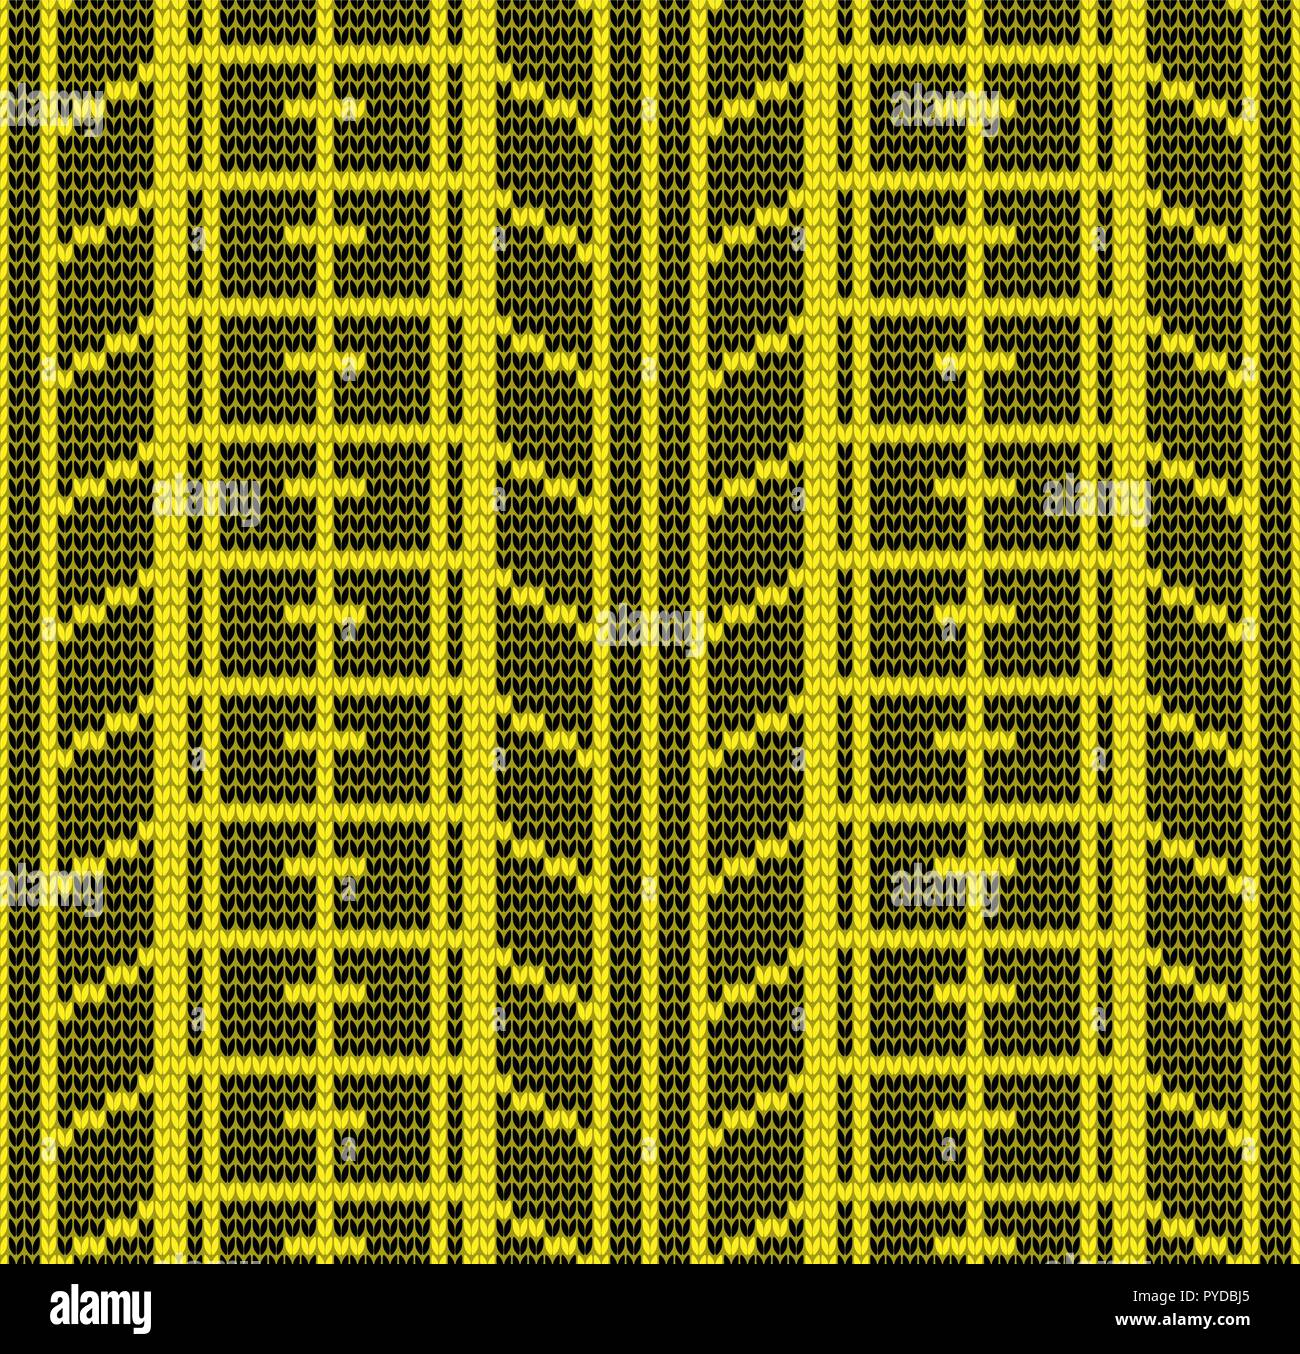 Abstract black and yellow seamless tire track knitting pattern background - Stock Vector